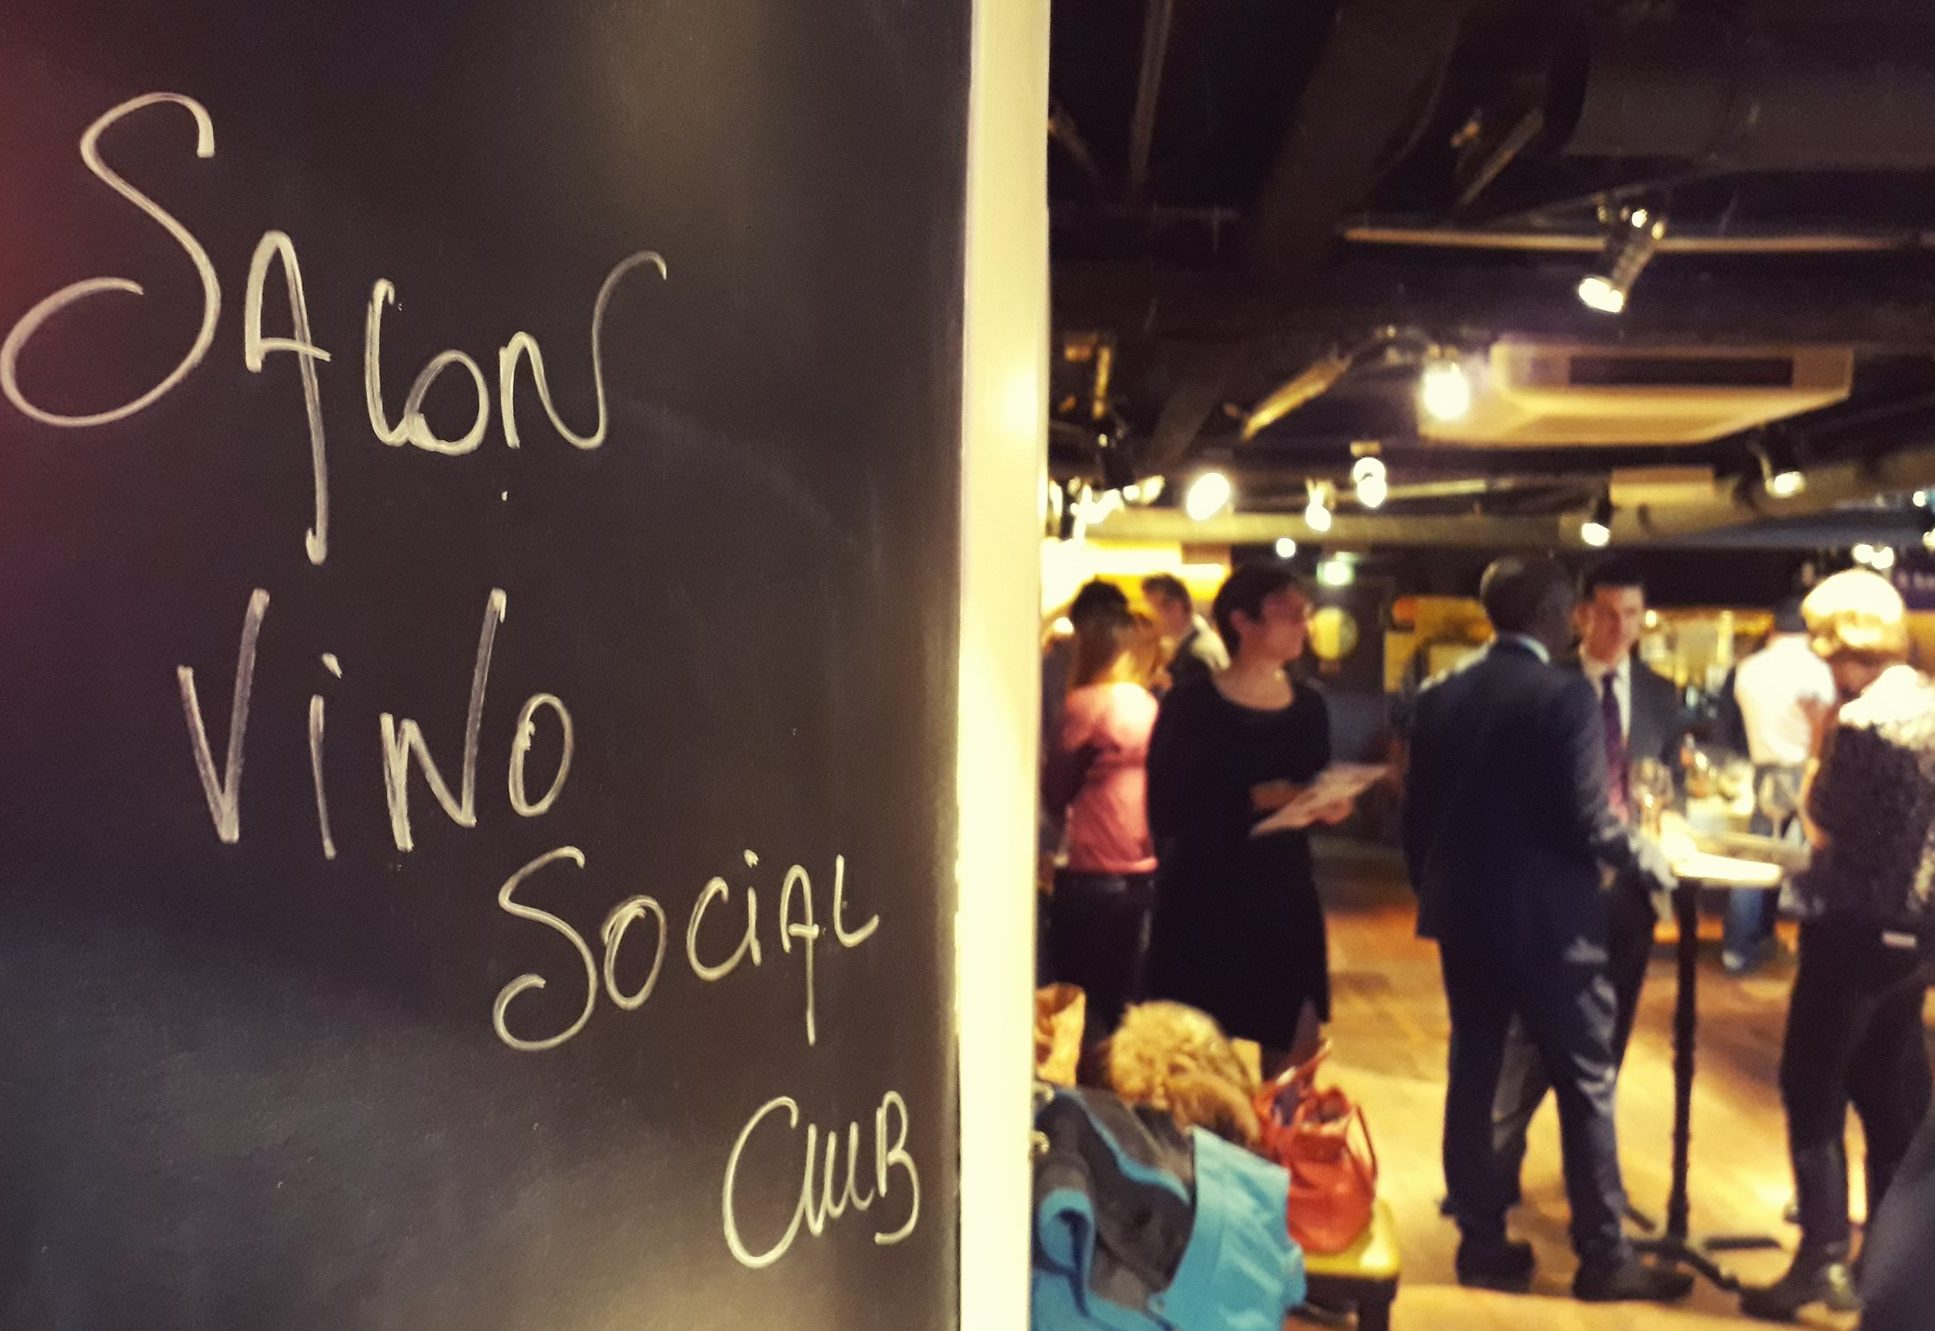 Vino Social Club Salon Vignerons